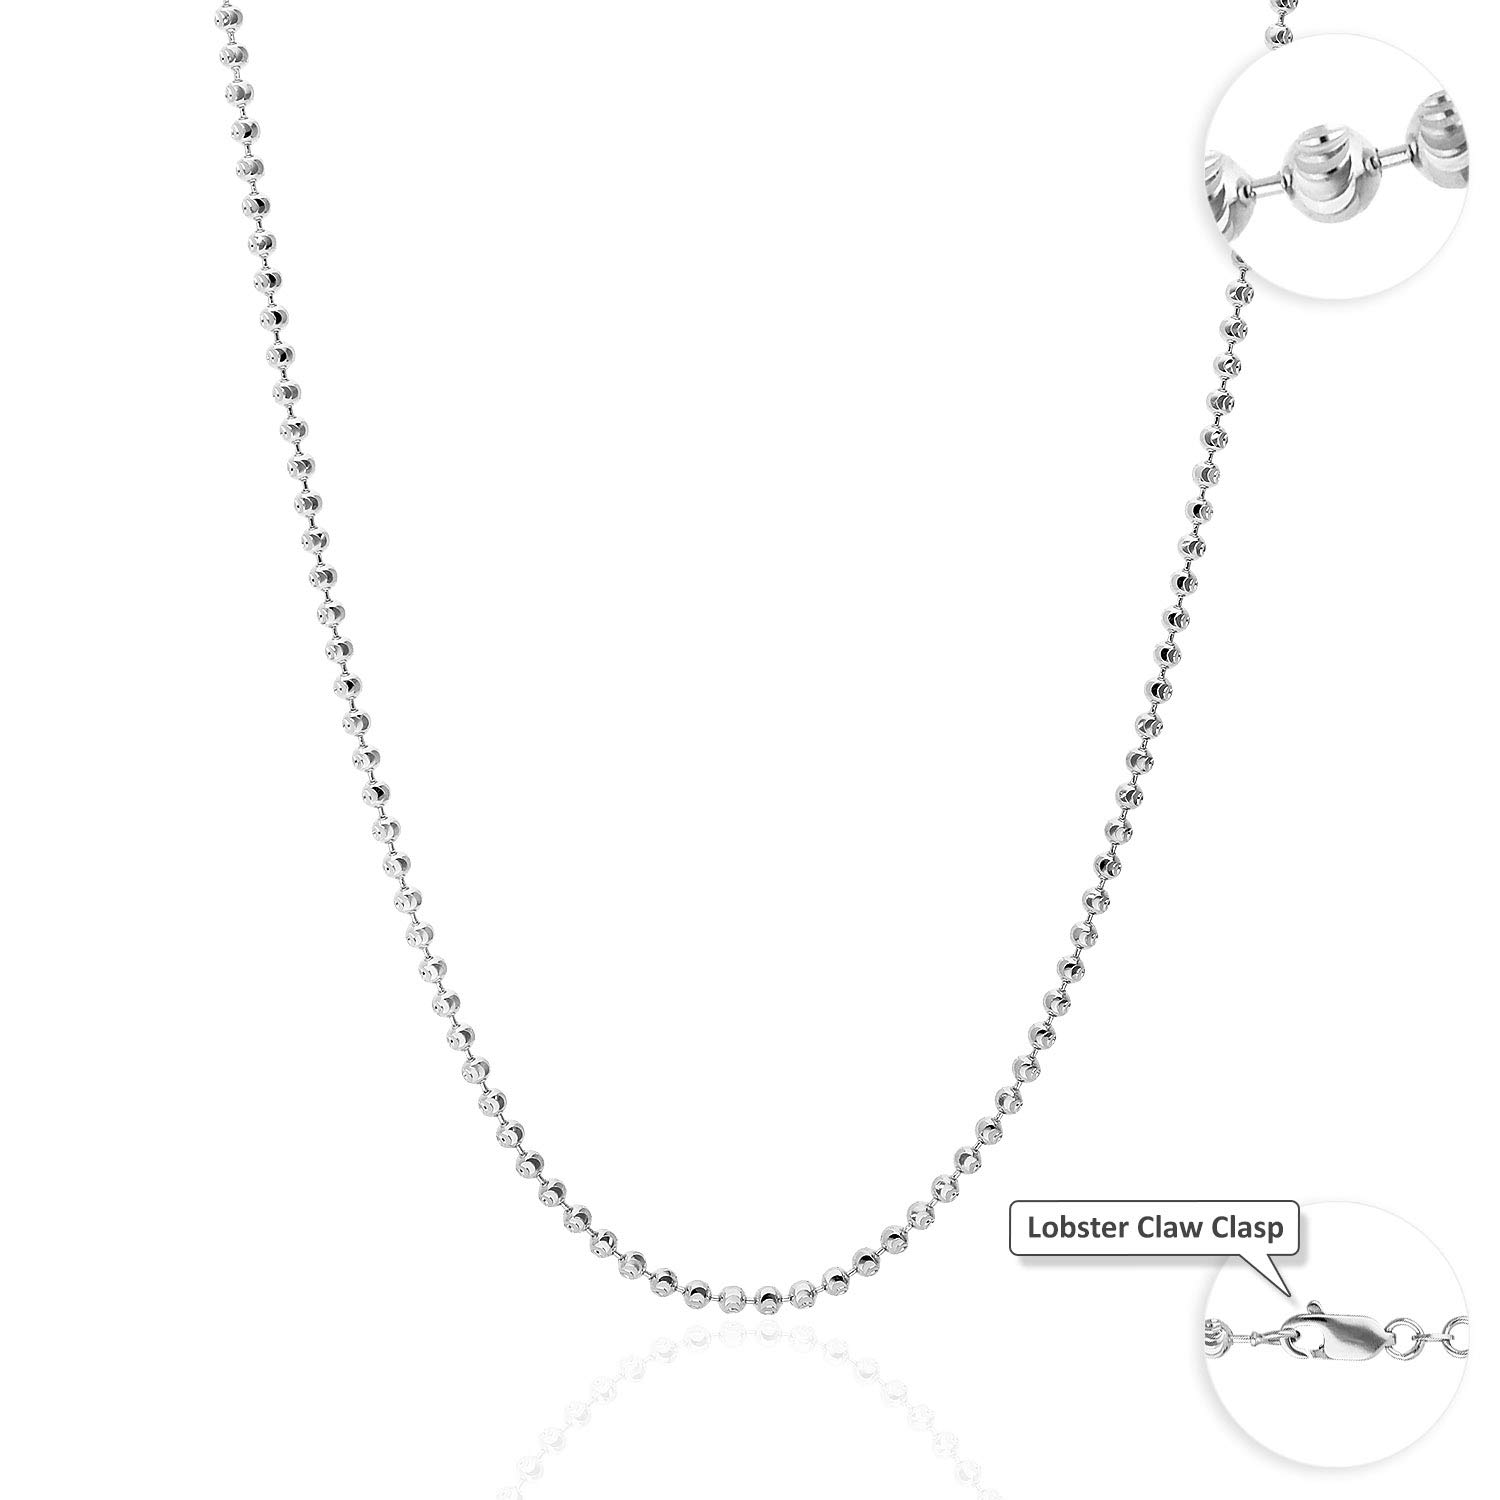 10K Solid White Gold 1.8mm-3.9mm Moon Cut Beads Dog Tag Chain Necklace 16''-30'', 3.4 24